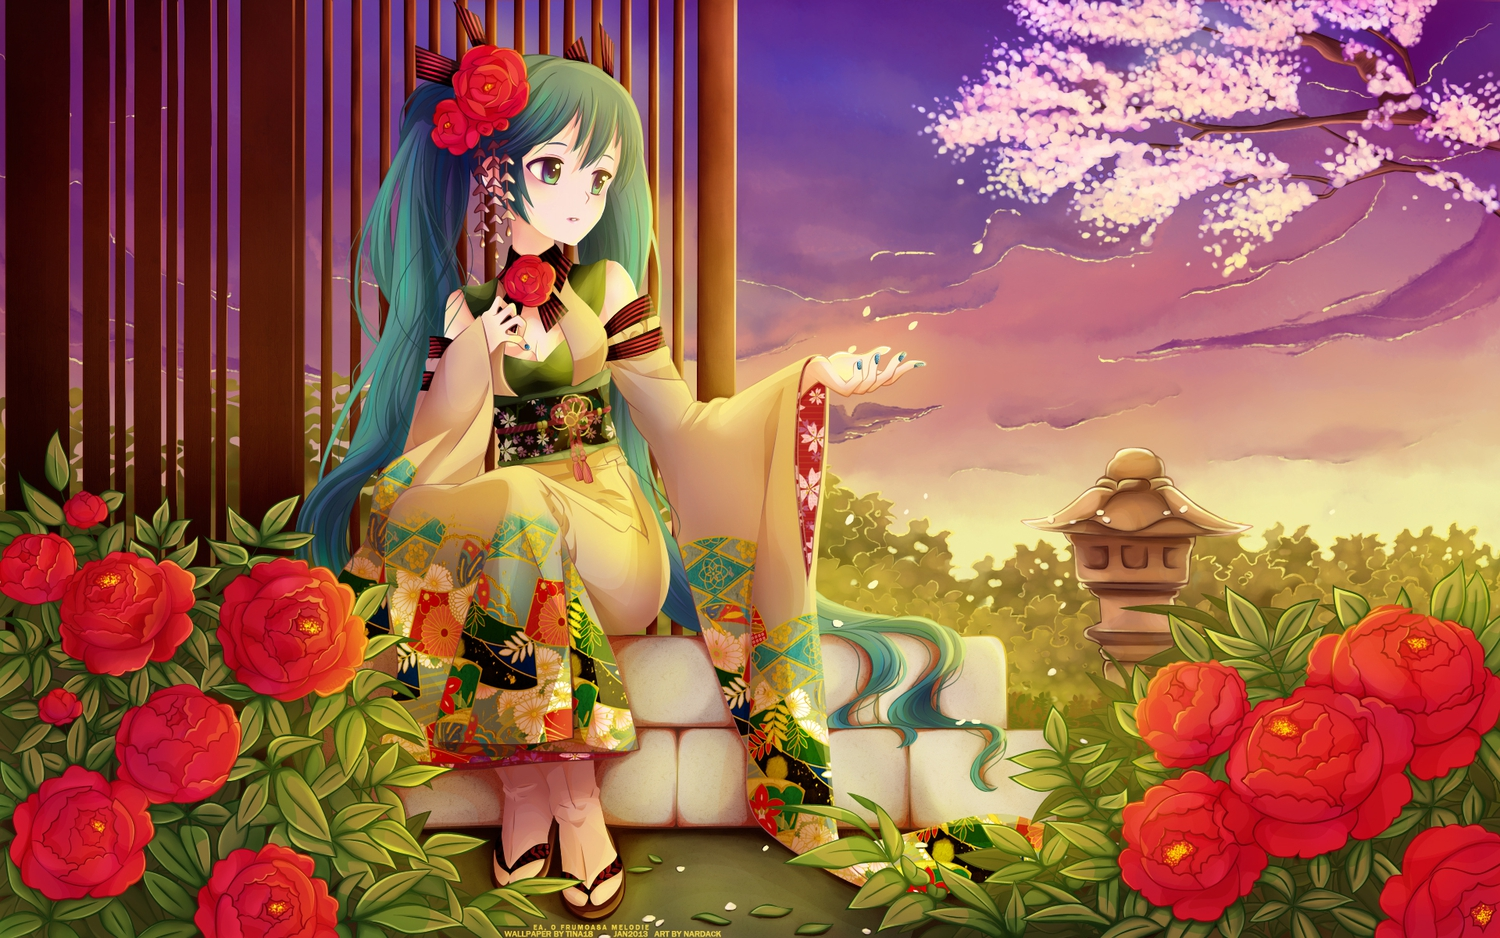 aqua_eyes aqua_hair breasts cherry_blossoms cleavage clouds flowers hatsune_miku japanese_clothes leaves nardack rose sky sunset tree twintails vocaloid watermark yukata